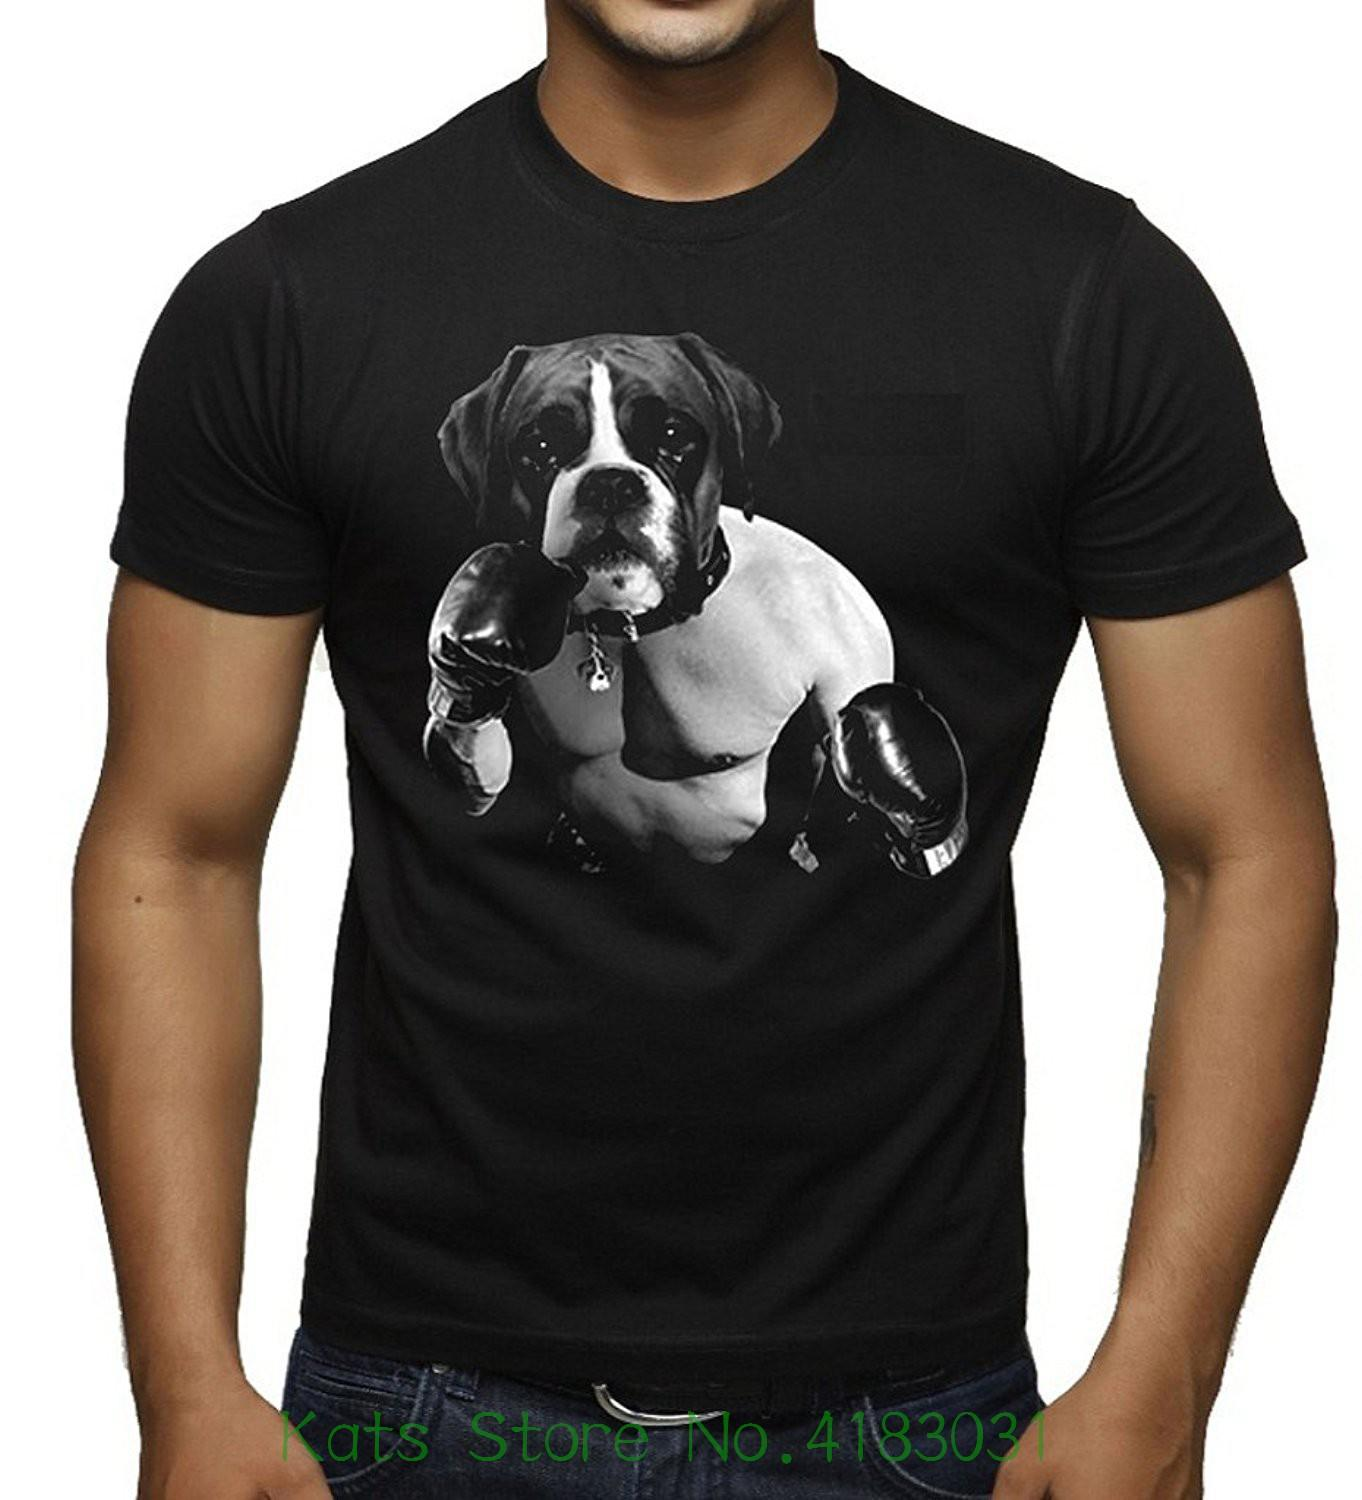 9348e6885a55 Men S Boxer Dog Boxer Black T Shirt Black New Arrival Male Tees Casual Boy T  Shirt Tops Discounts Political Tee Shirts Funny Political T Shirts From .